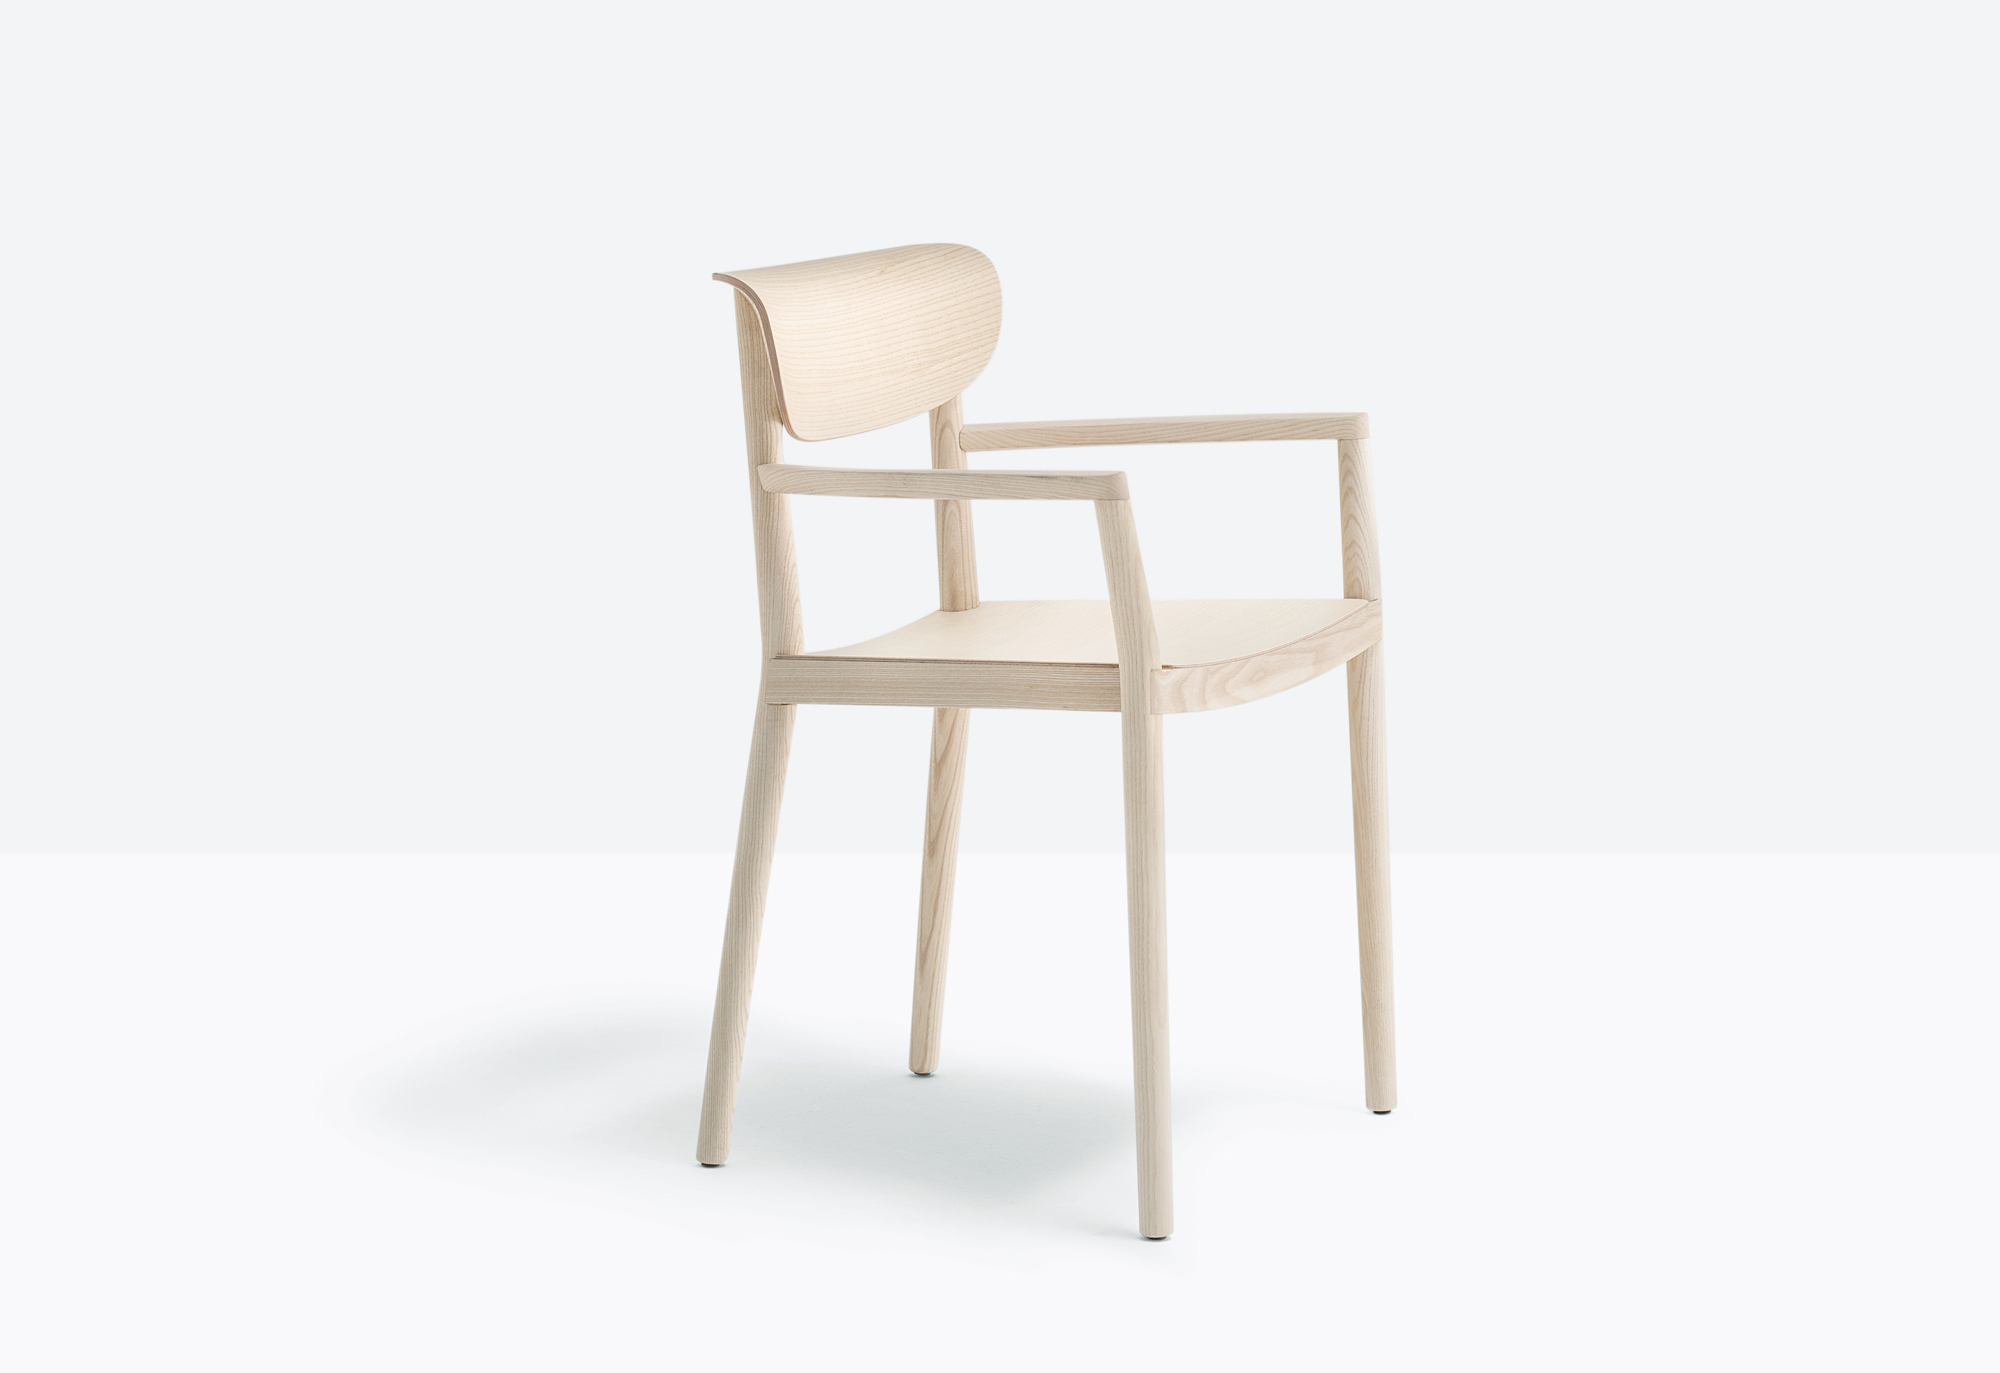 Tivoli Wooden Armchair - Tivoli recalls the traditional wooden chairs, maintaining comfort and inspiring conviviality. Solid ash wood armchairs with three-dimensional plywood back. | Matter of Stuff